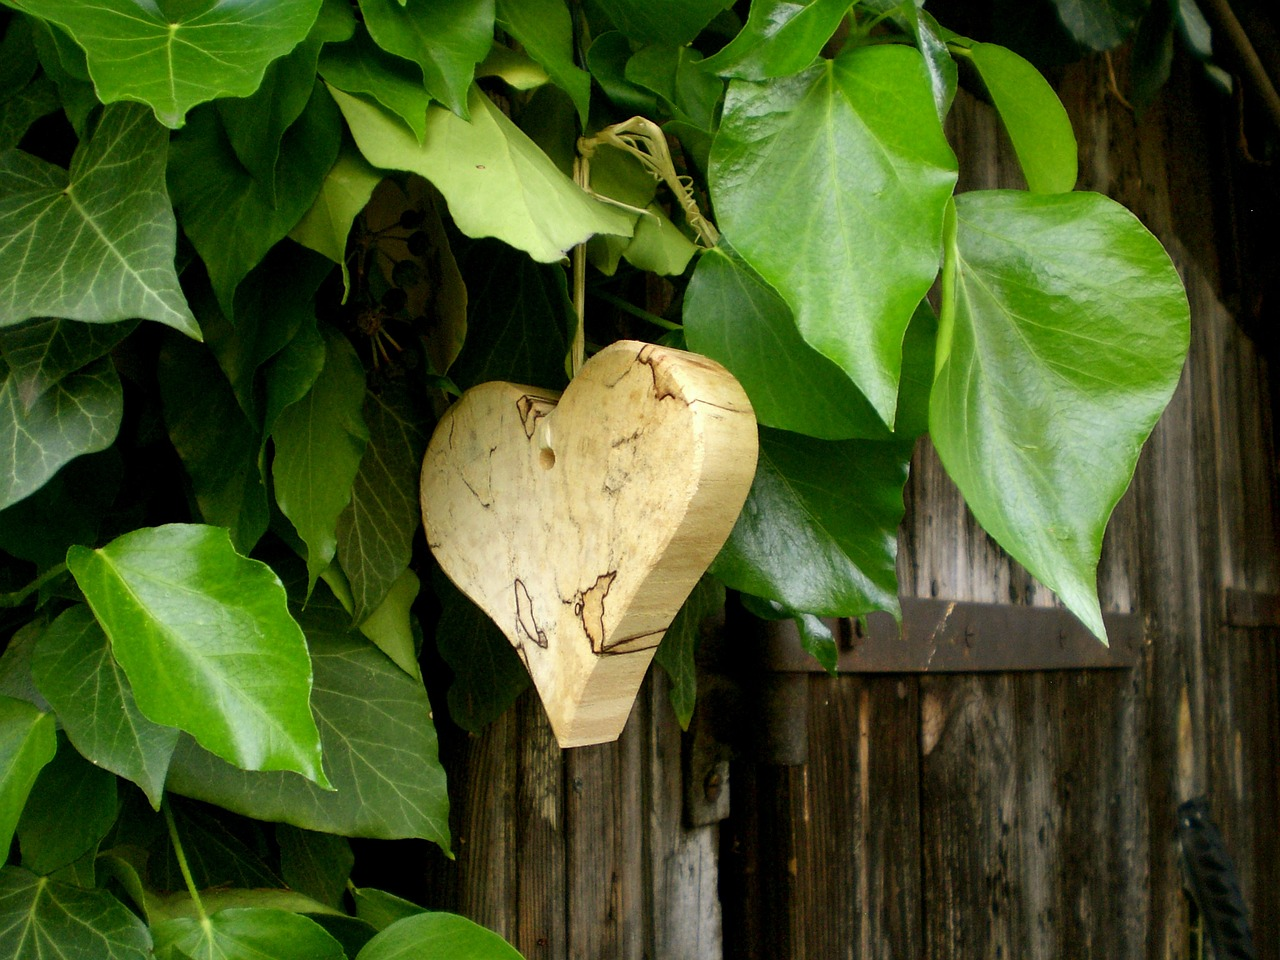 heart,symbol,feelings,romantic,ivy,leaves,wood,climber,grapevines,common ivy,green,still life,free pictures, free photos, free images, royalty free, free illustrations, public domain